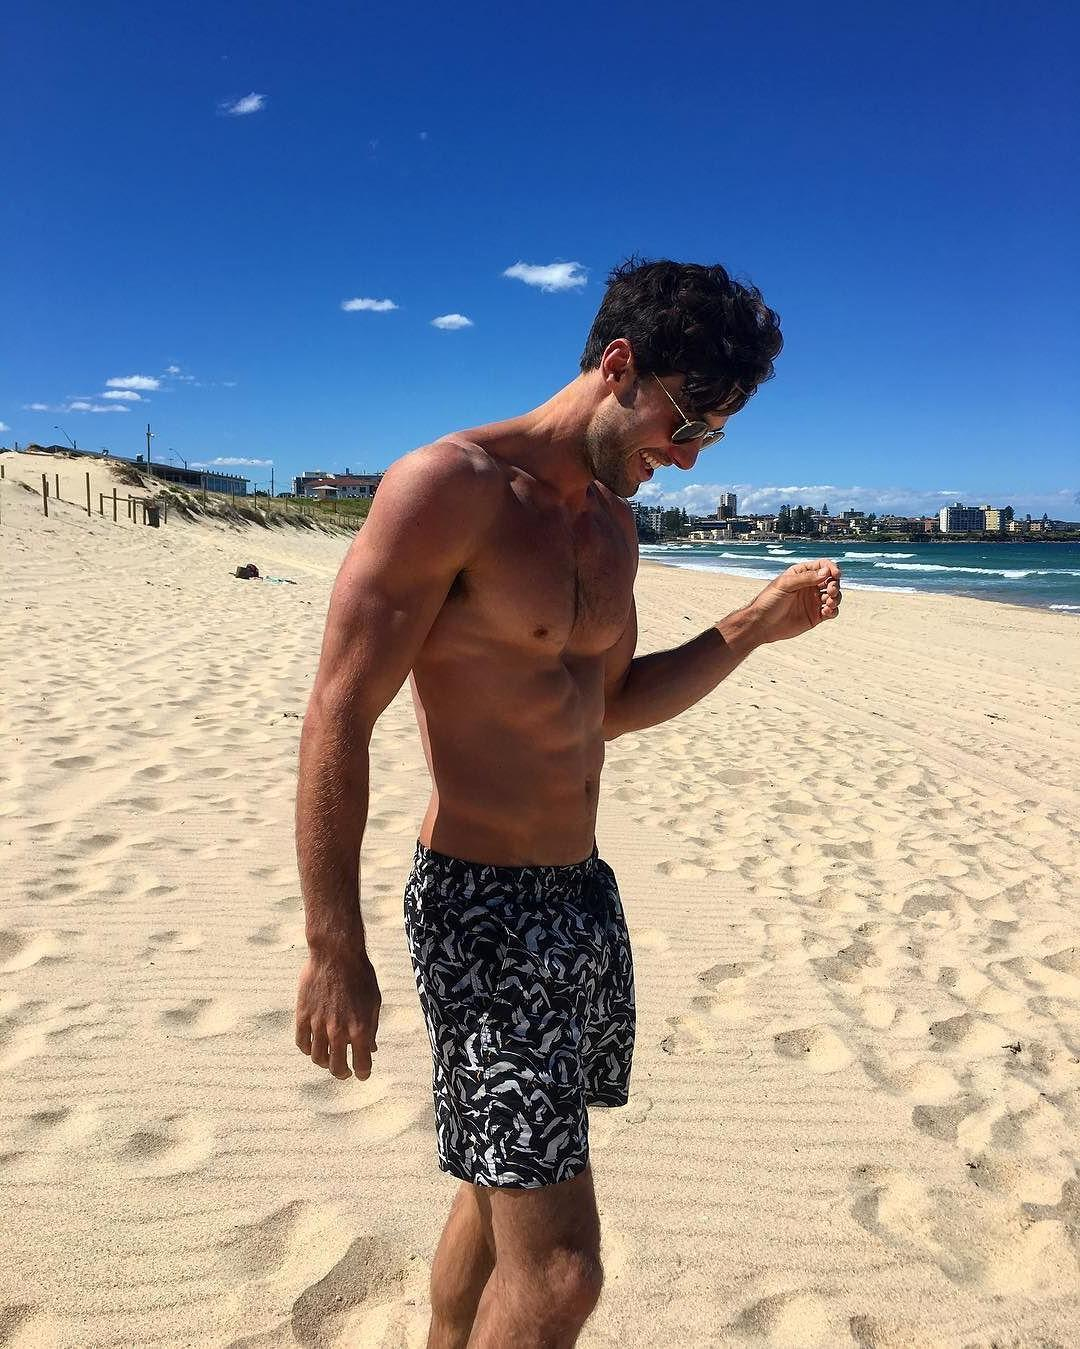 shirtless-beach-daddy-fit-abs-smiling-sunglasses